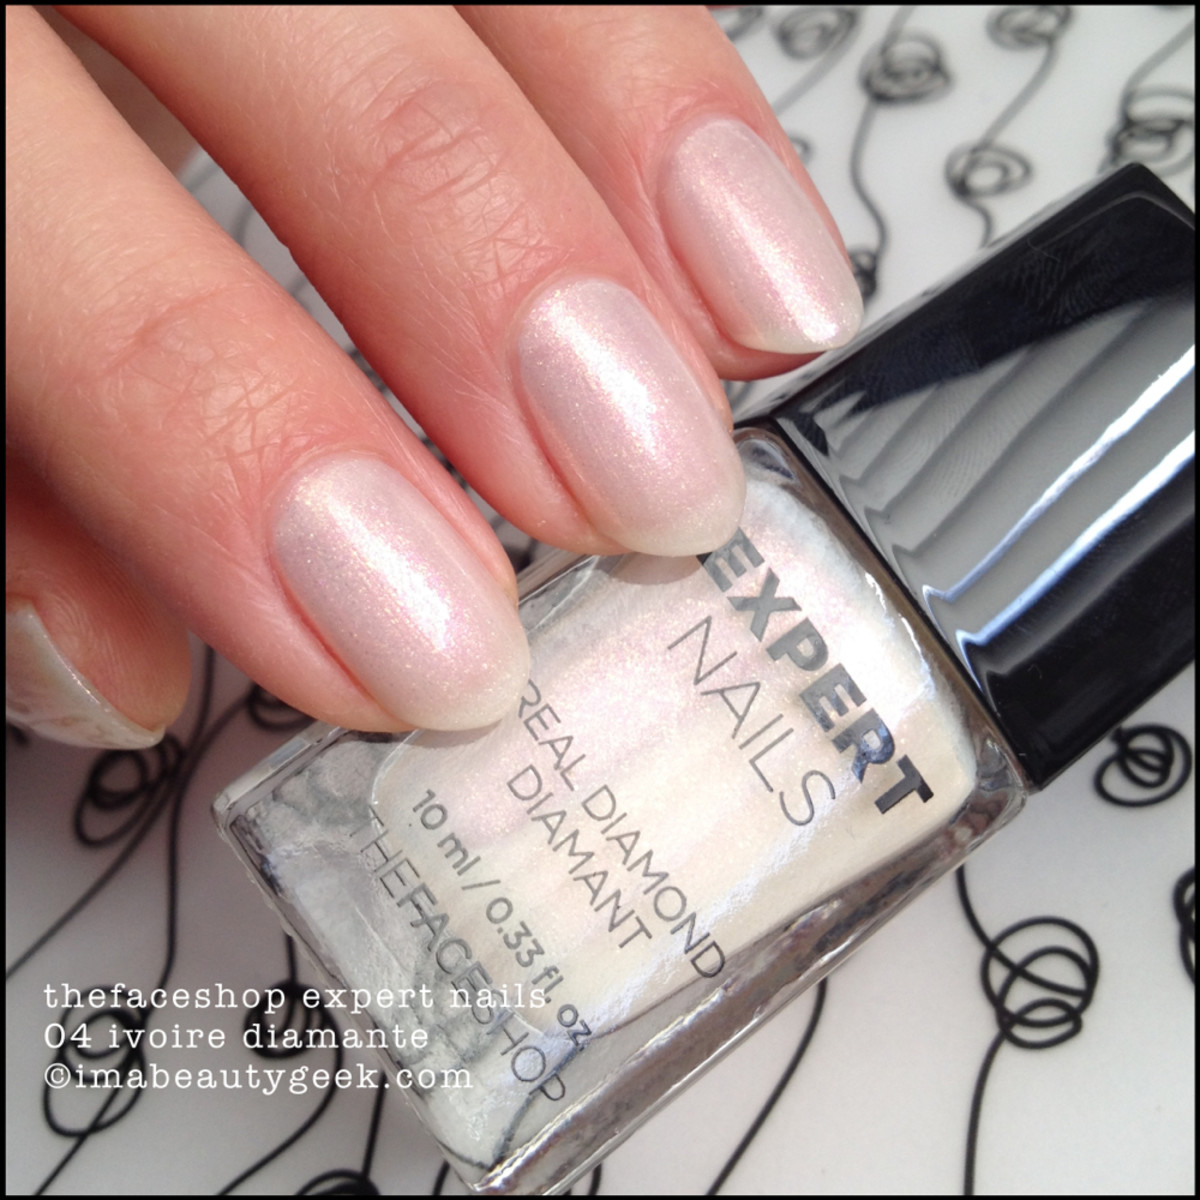 TheFaceShop Expert Nails 04 Ivoire Diamante Swatch